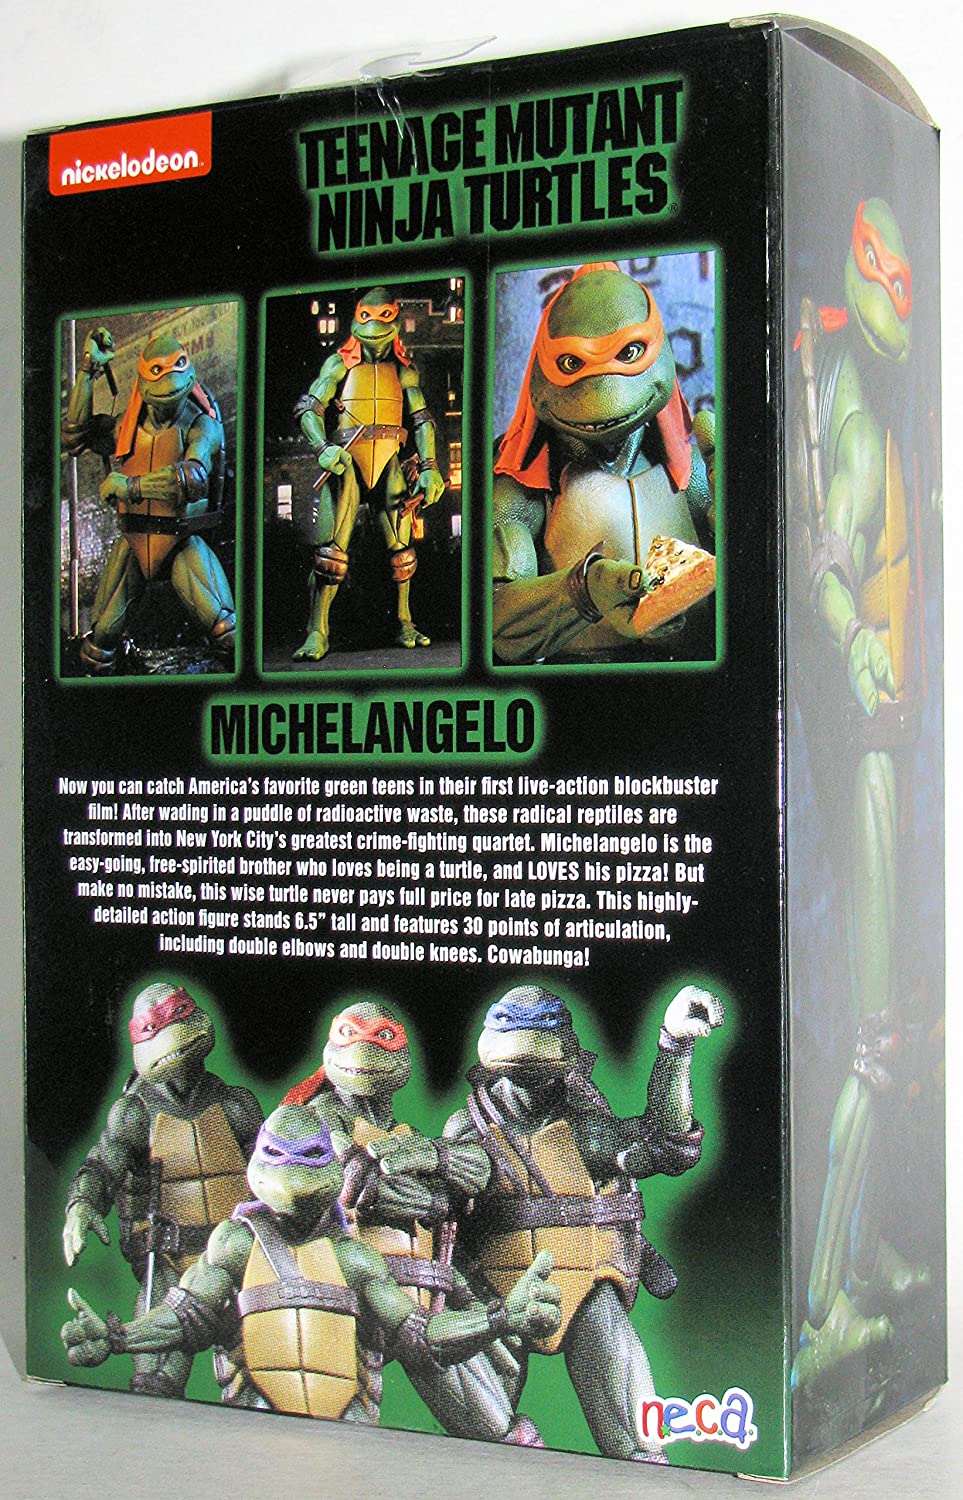 Teenage Mutant Ninja Turtles 90s Movie Michelangelo 6.5-inch Action Figure by NECA Reel Toys 2019 GameStop Exclusive